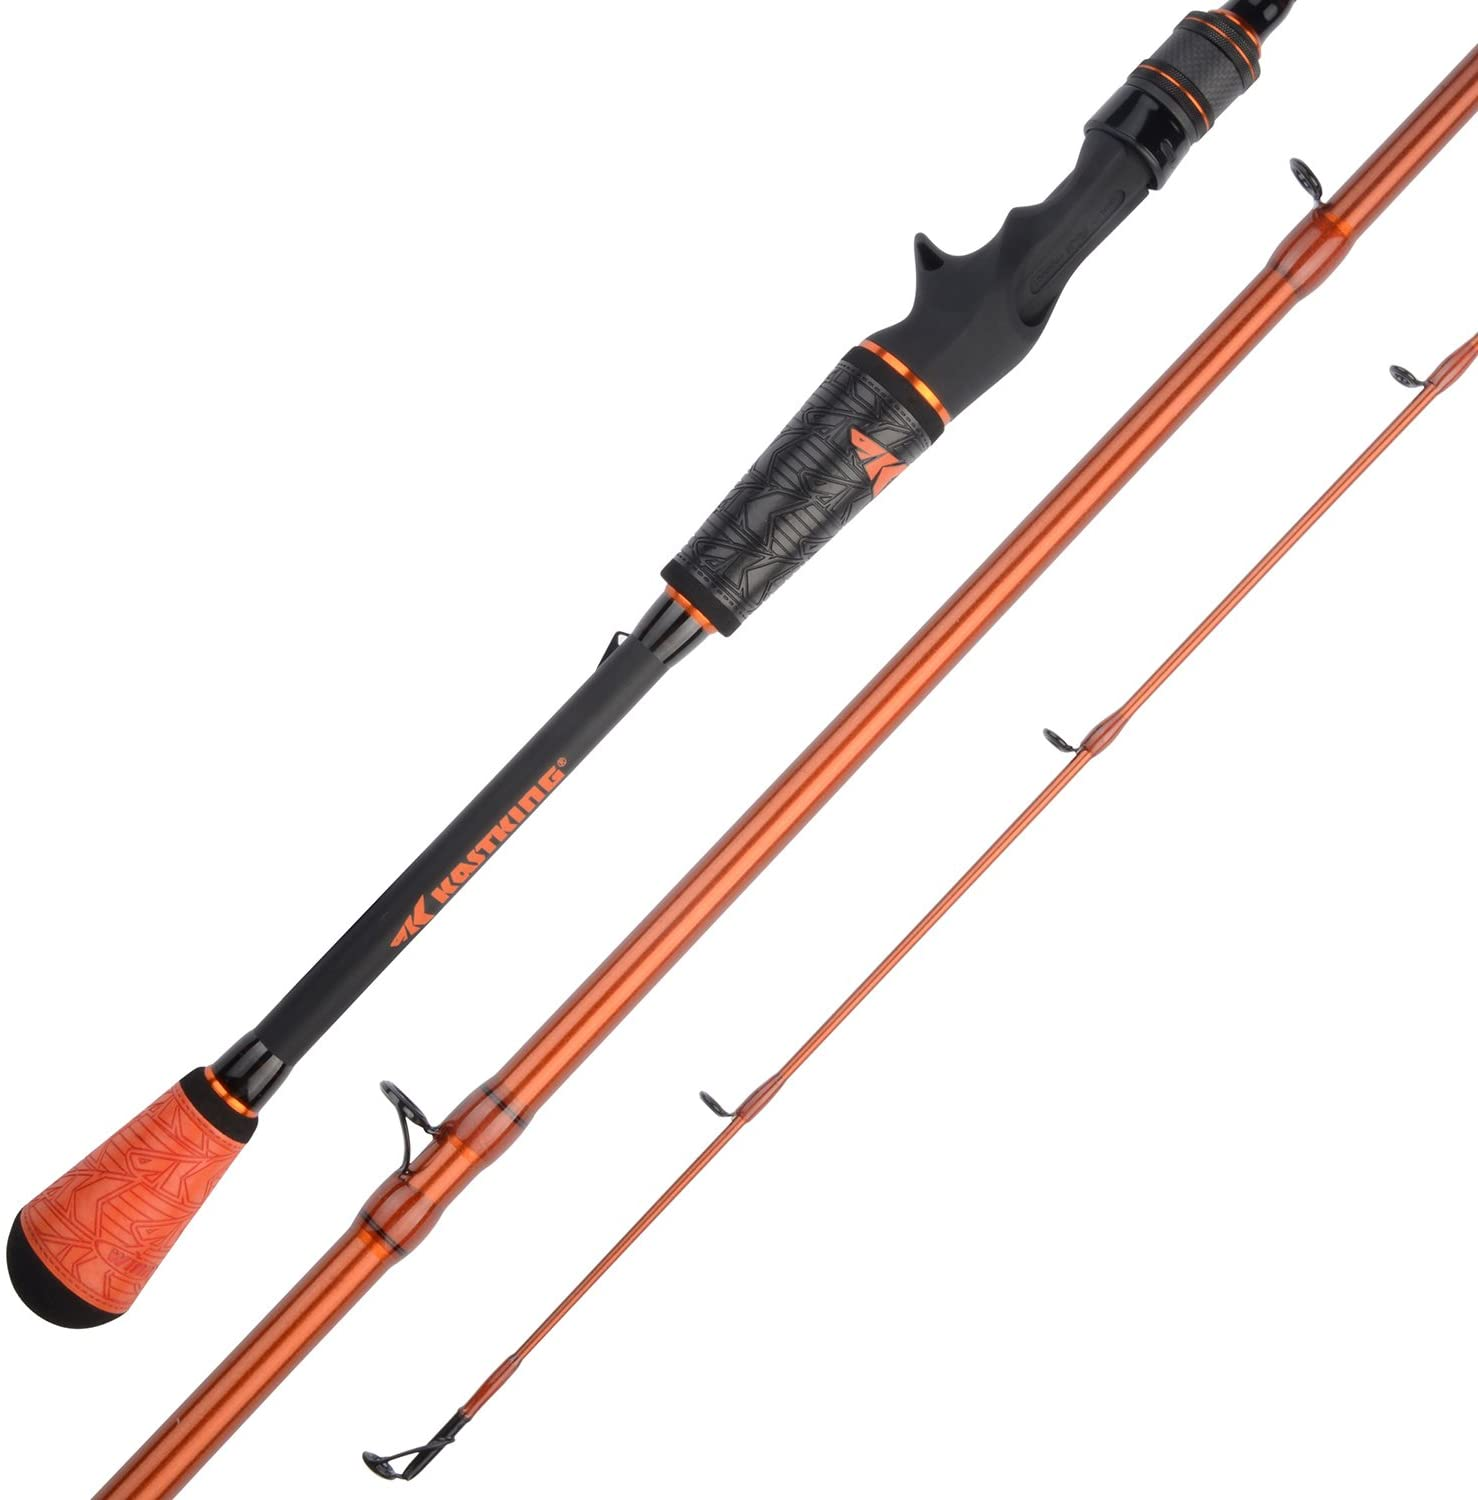 Best Baitcasting Rod Under $200